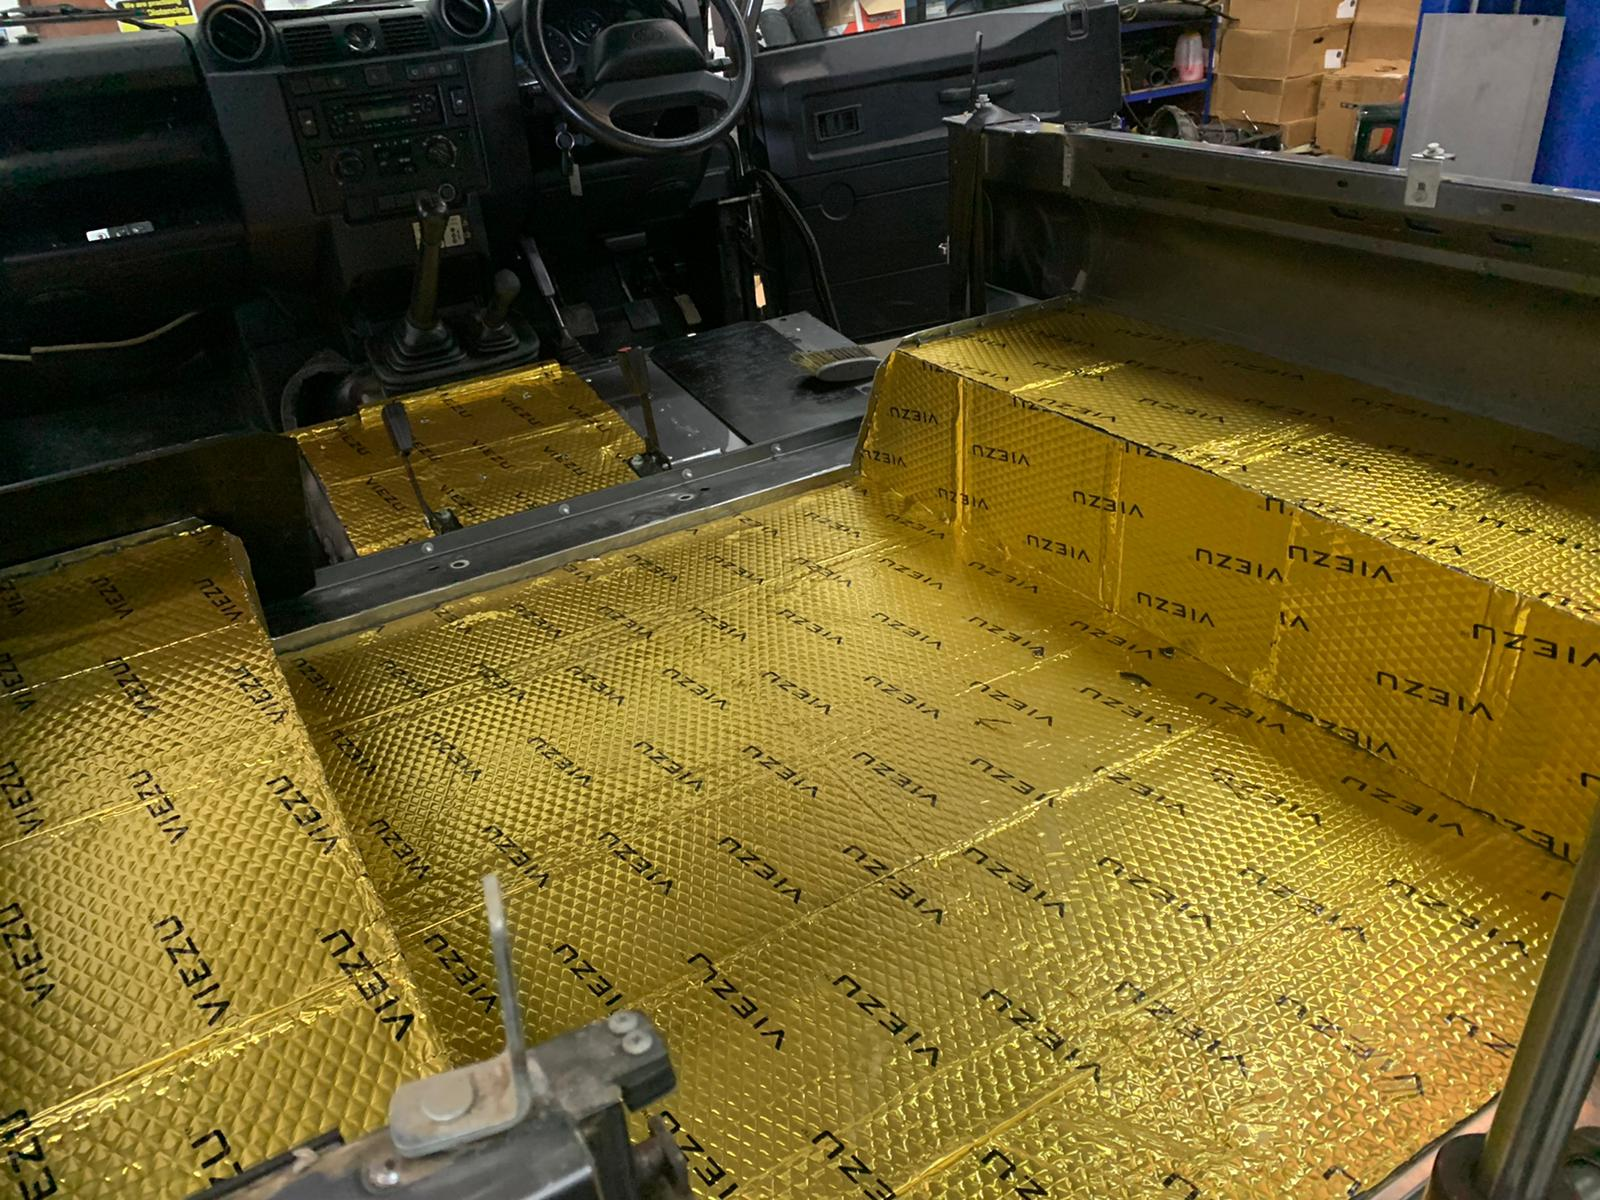 Land Rover Defender Soundproofing, Land Rover Defender Soundproofing and sound deadening material